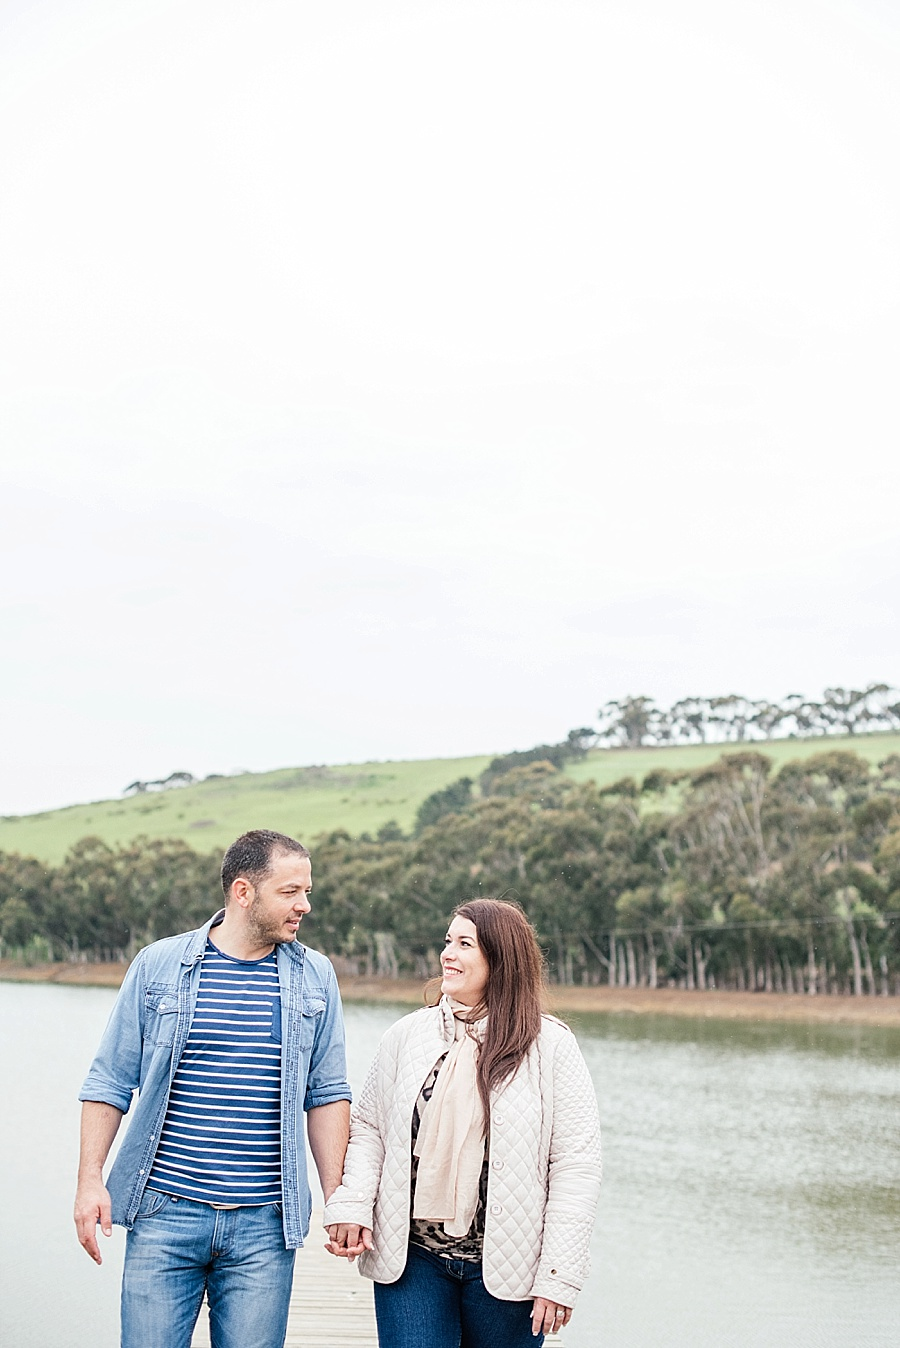 Darren Bester Photography - Cape Town Photographer - Family Photography_0002.jpg